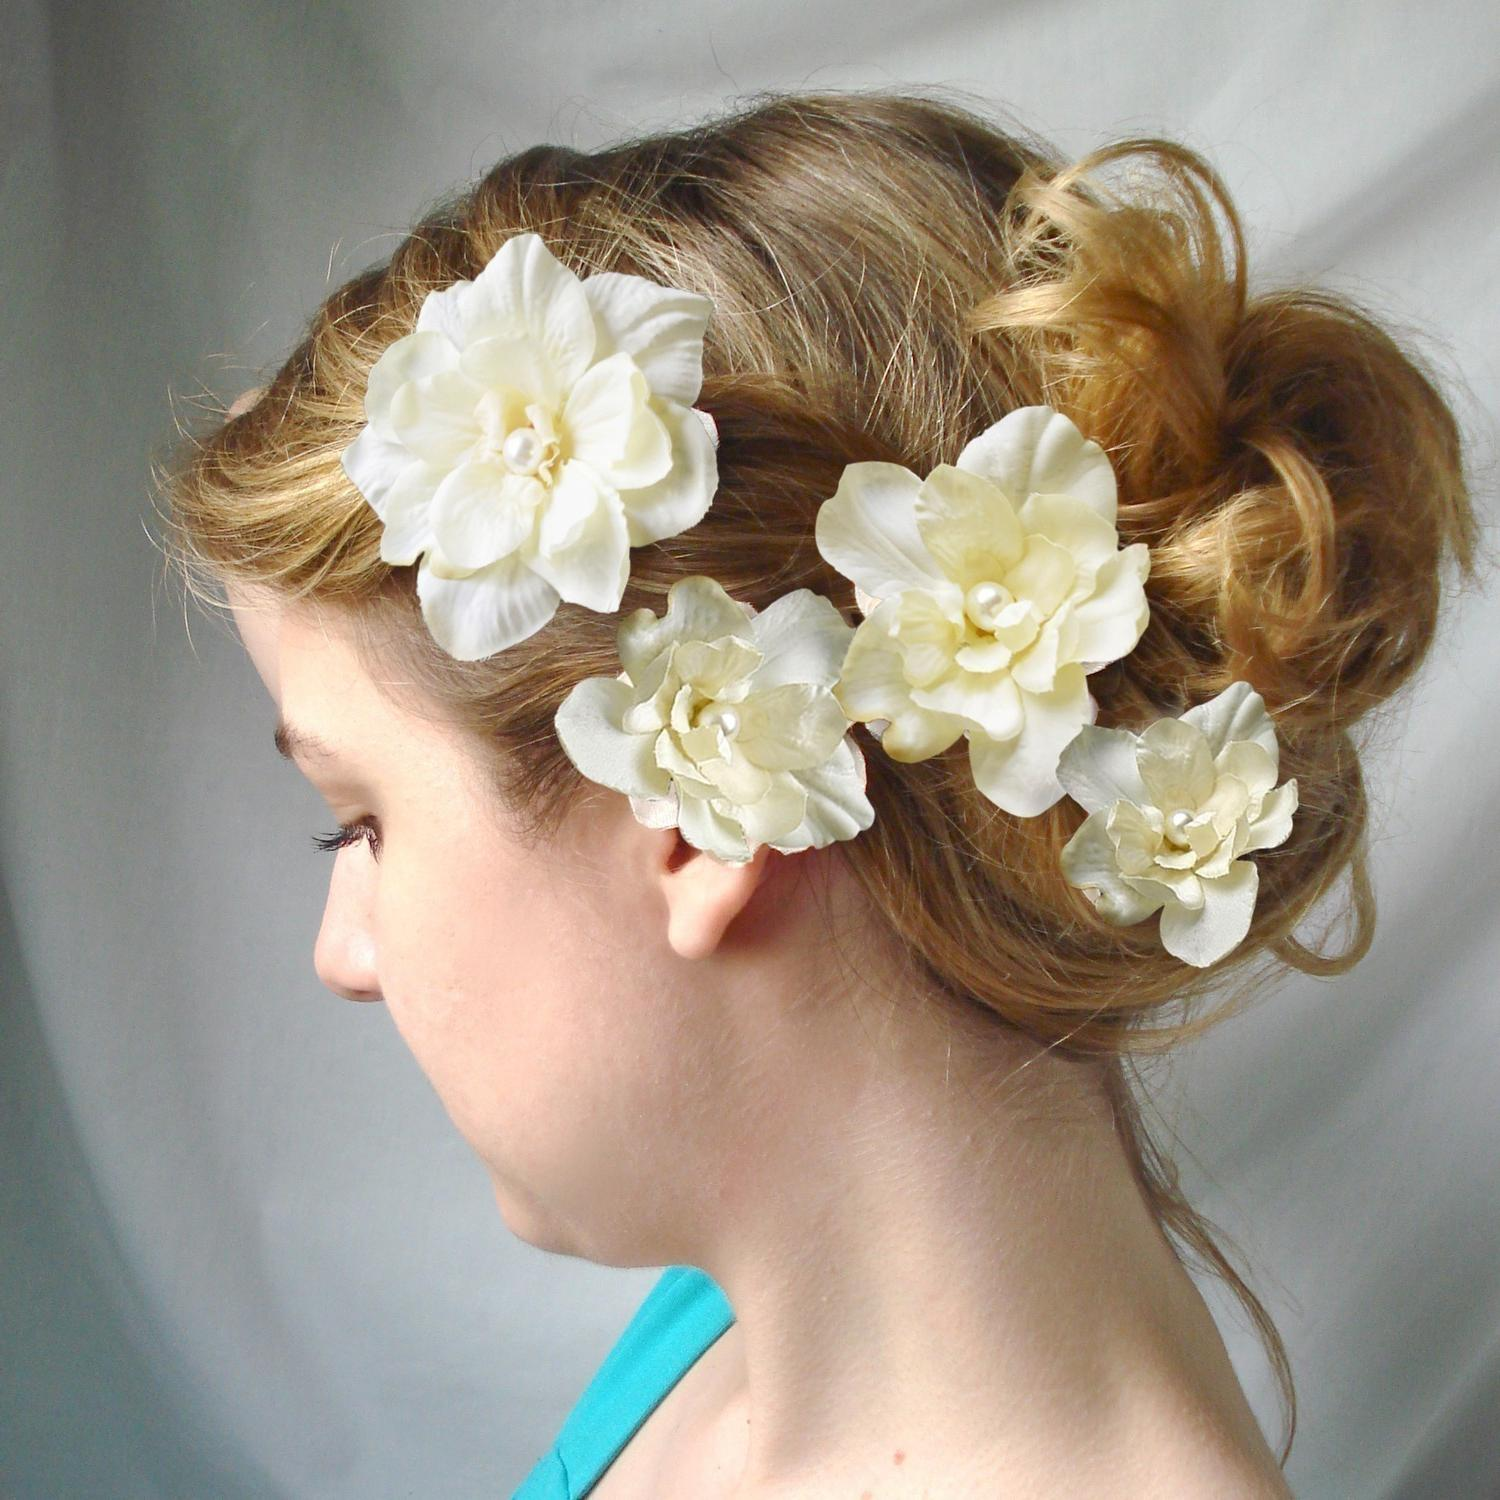 Wilmide's blog: ivory flower hair clips